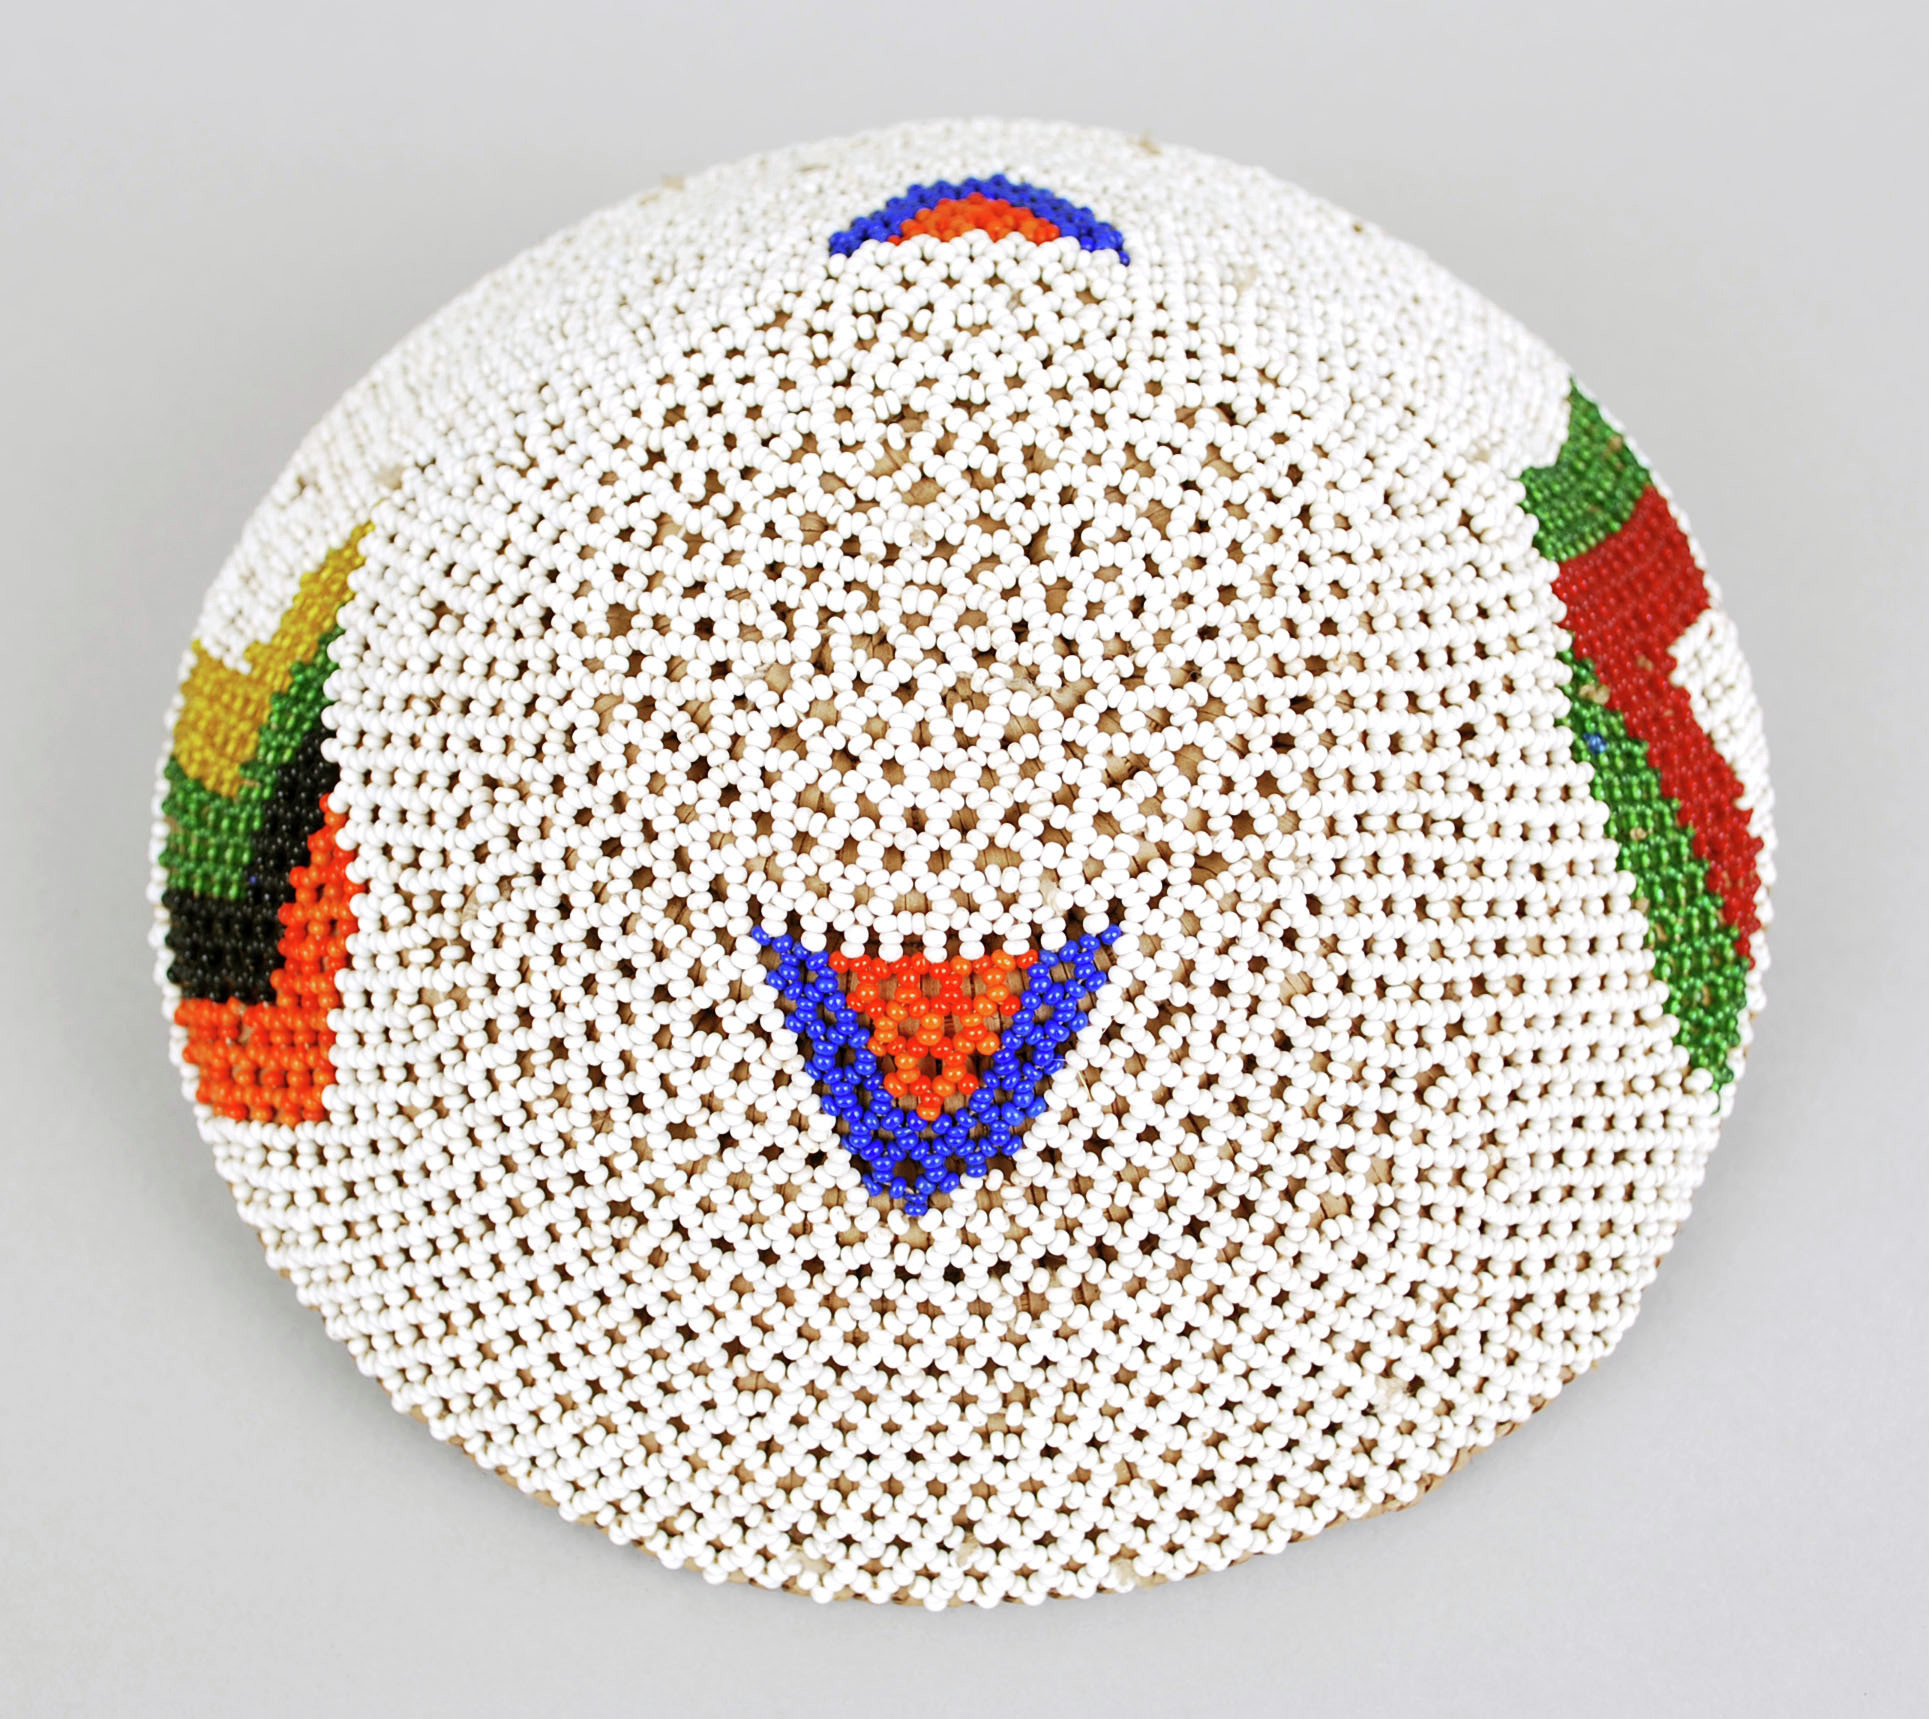 Beer Pot Lid (Imbenge), Zulu people, Area of Eshowe, South Africa, African, grass fibers, glass beads and thread